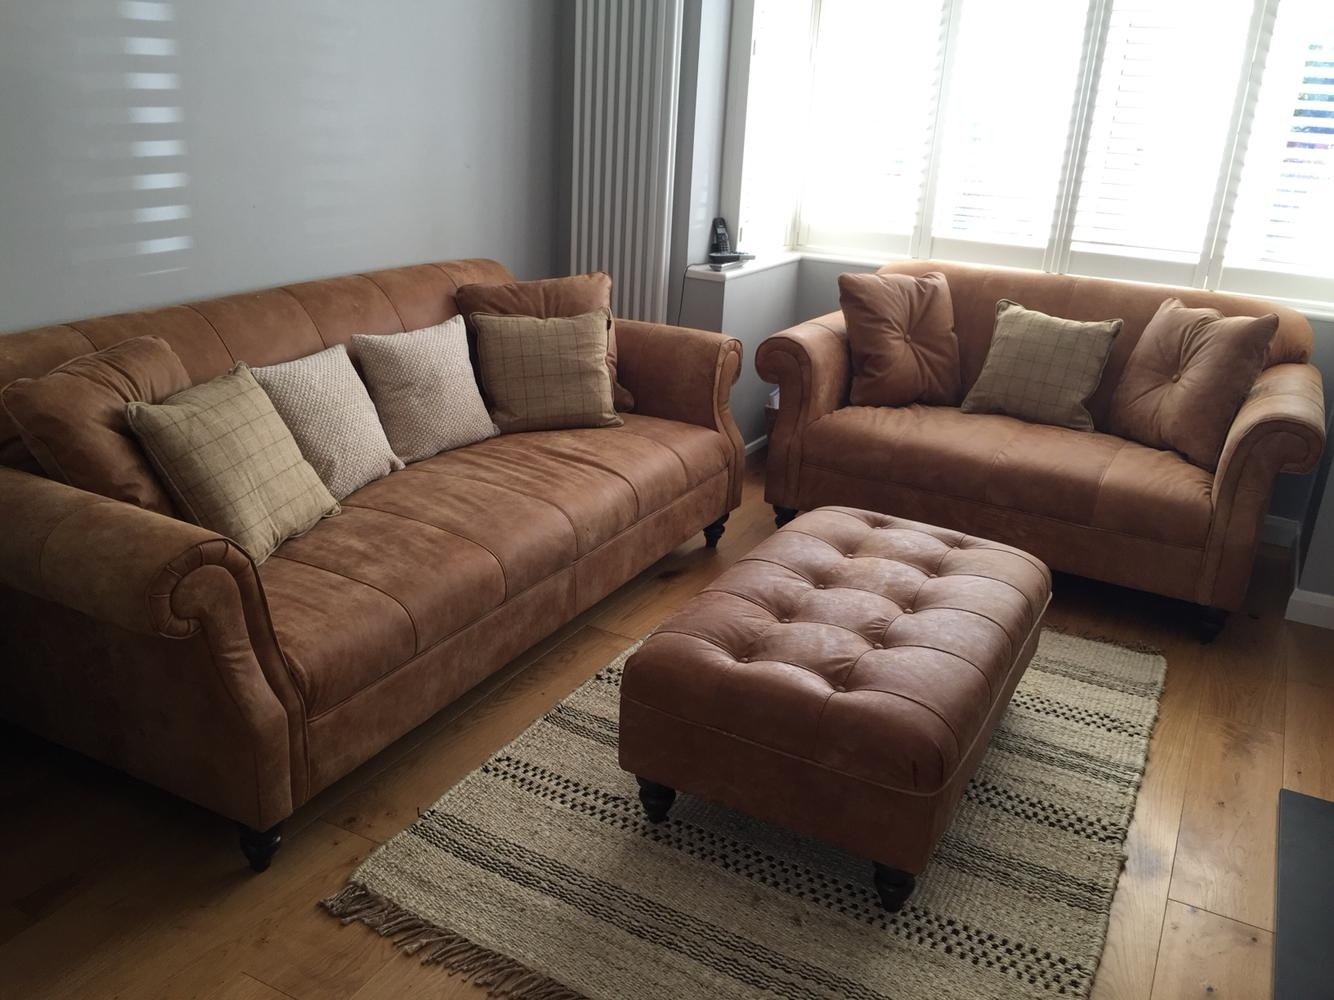 Sofas Center : Camel Leather Sofa Ashley Furniture Caramel Colored Pertaining To Caramel Leather Sofas (View 12 of 20)